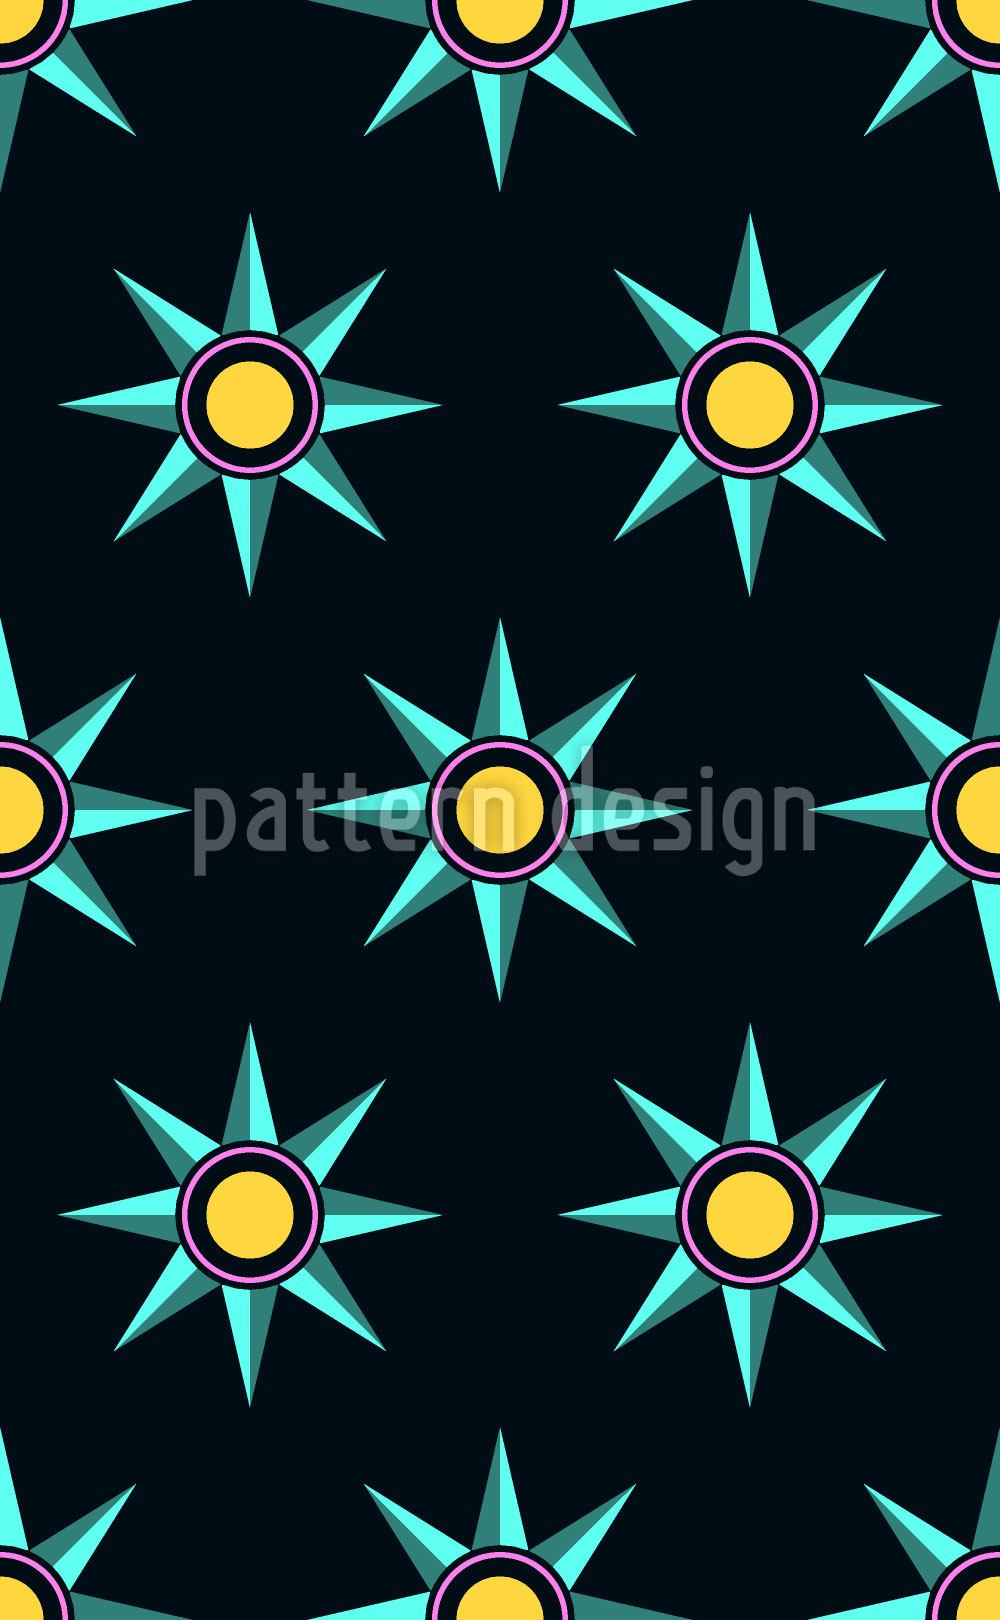 Pattern Wallpaper Star Parade